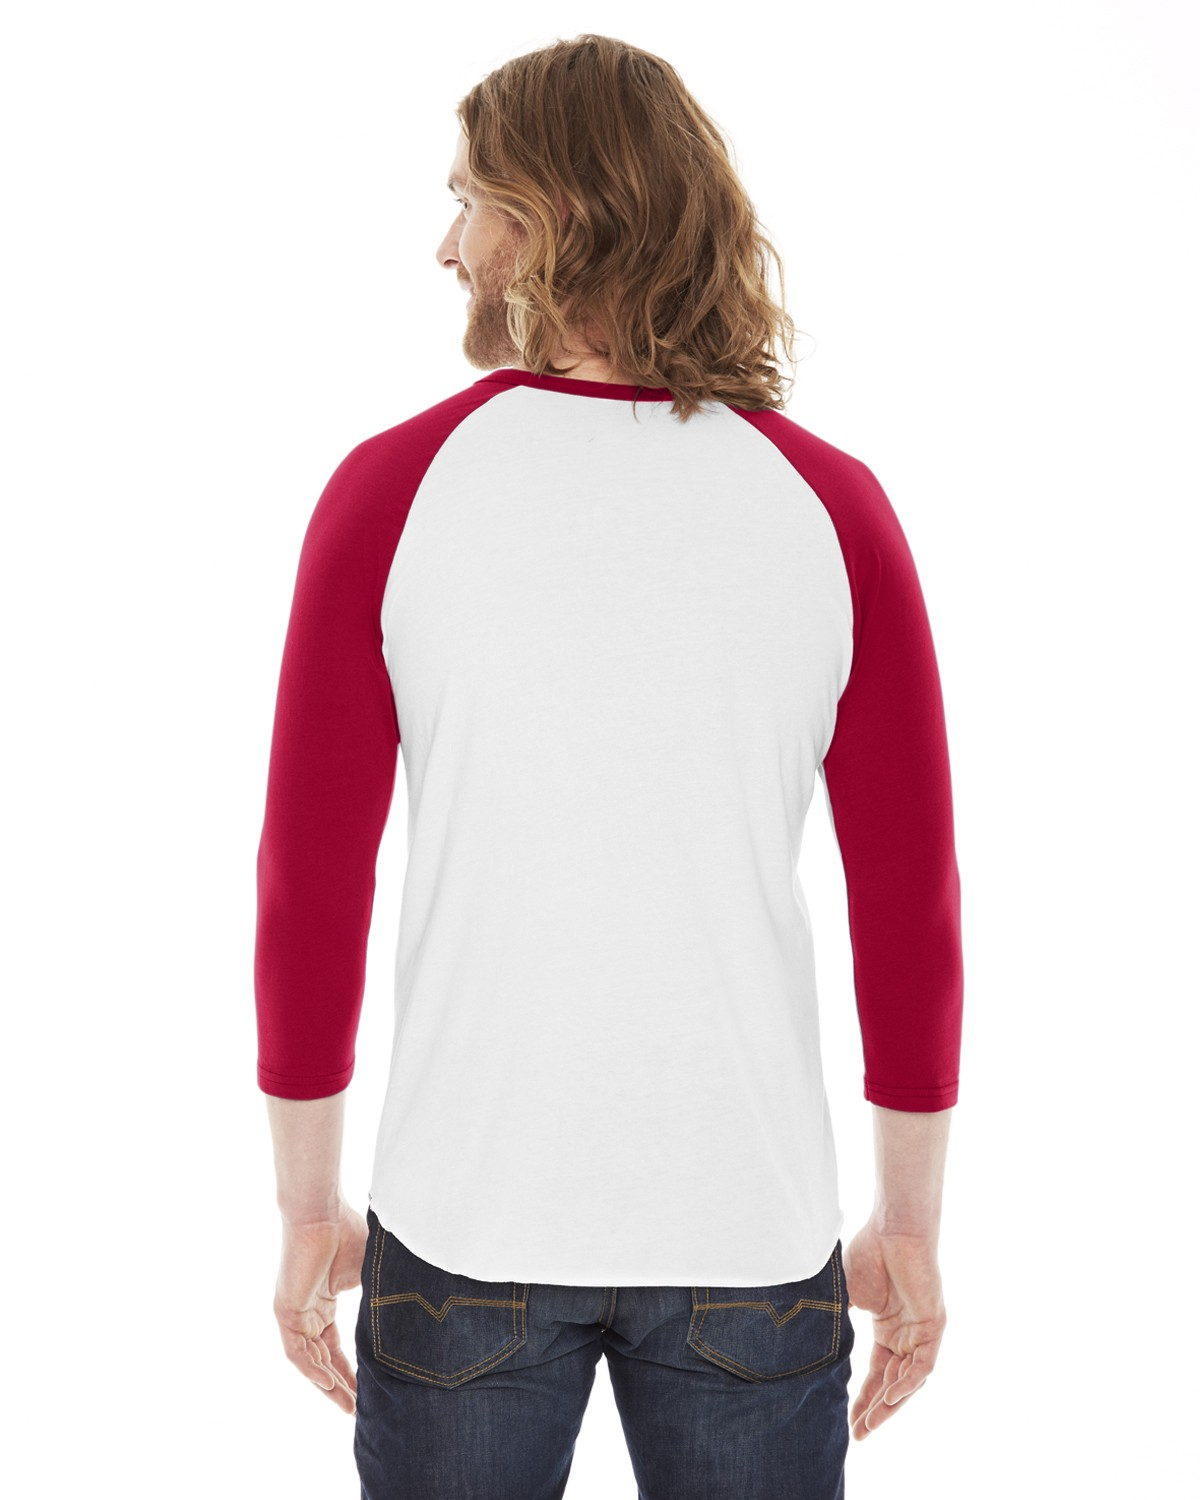 BB453 American Apparel WHITE/RED